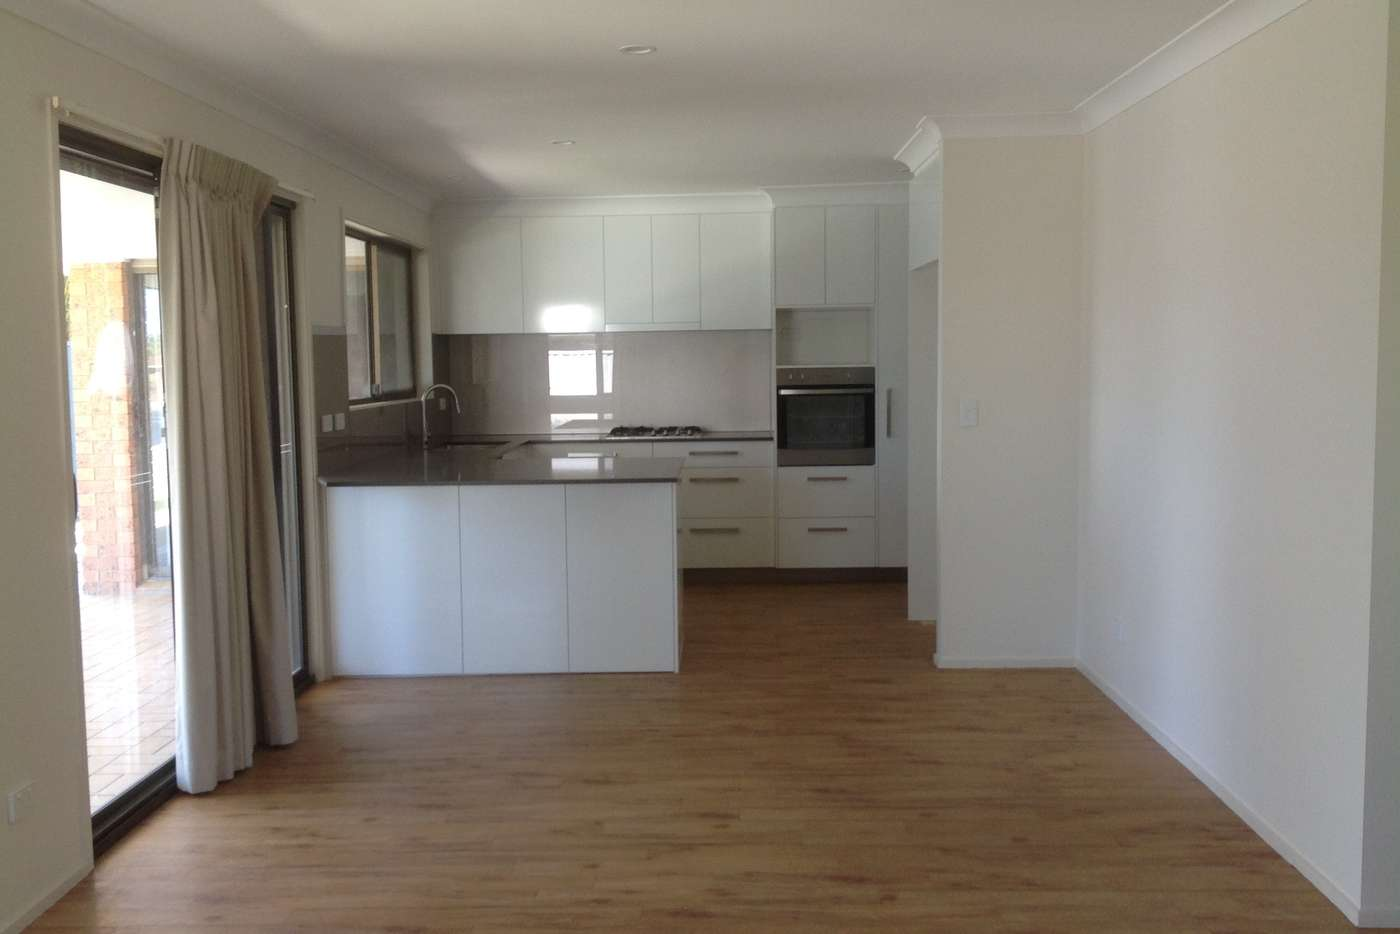 Sixth view of Homely house listing, 32 Honeyeater Dr, Burleigh Waters QLD 4220